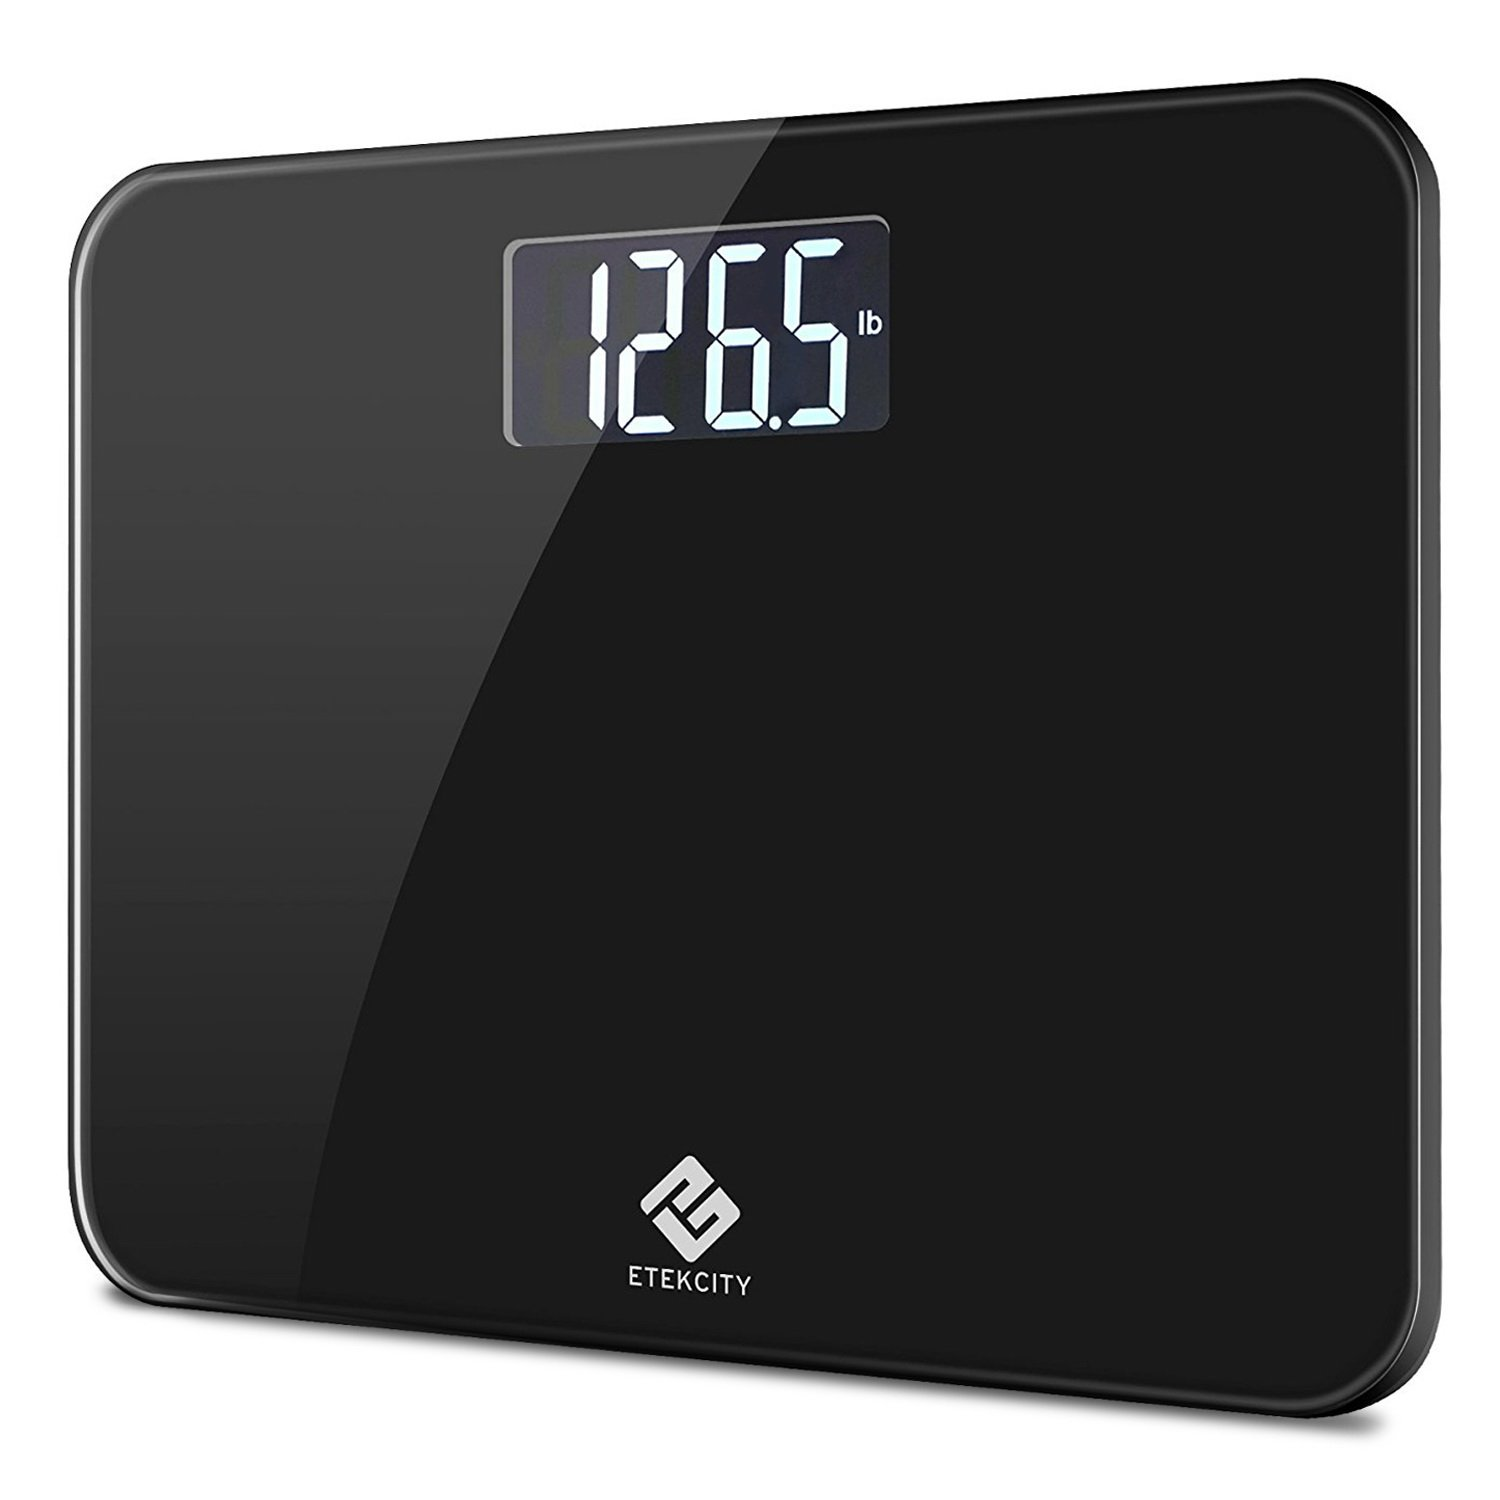 Etekcity High Precision Digital Body Weight Bathroom Scale with Step-On Technology, 440 Pounds